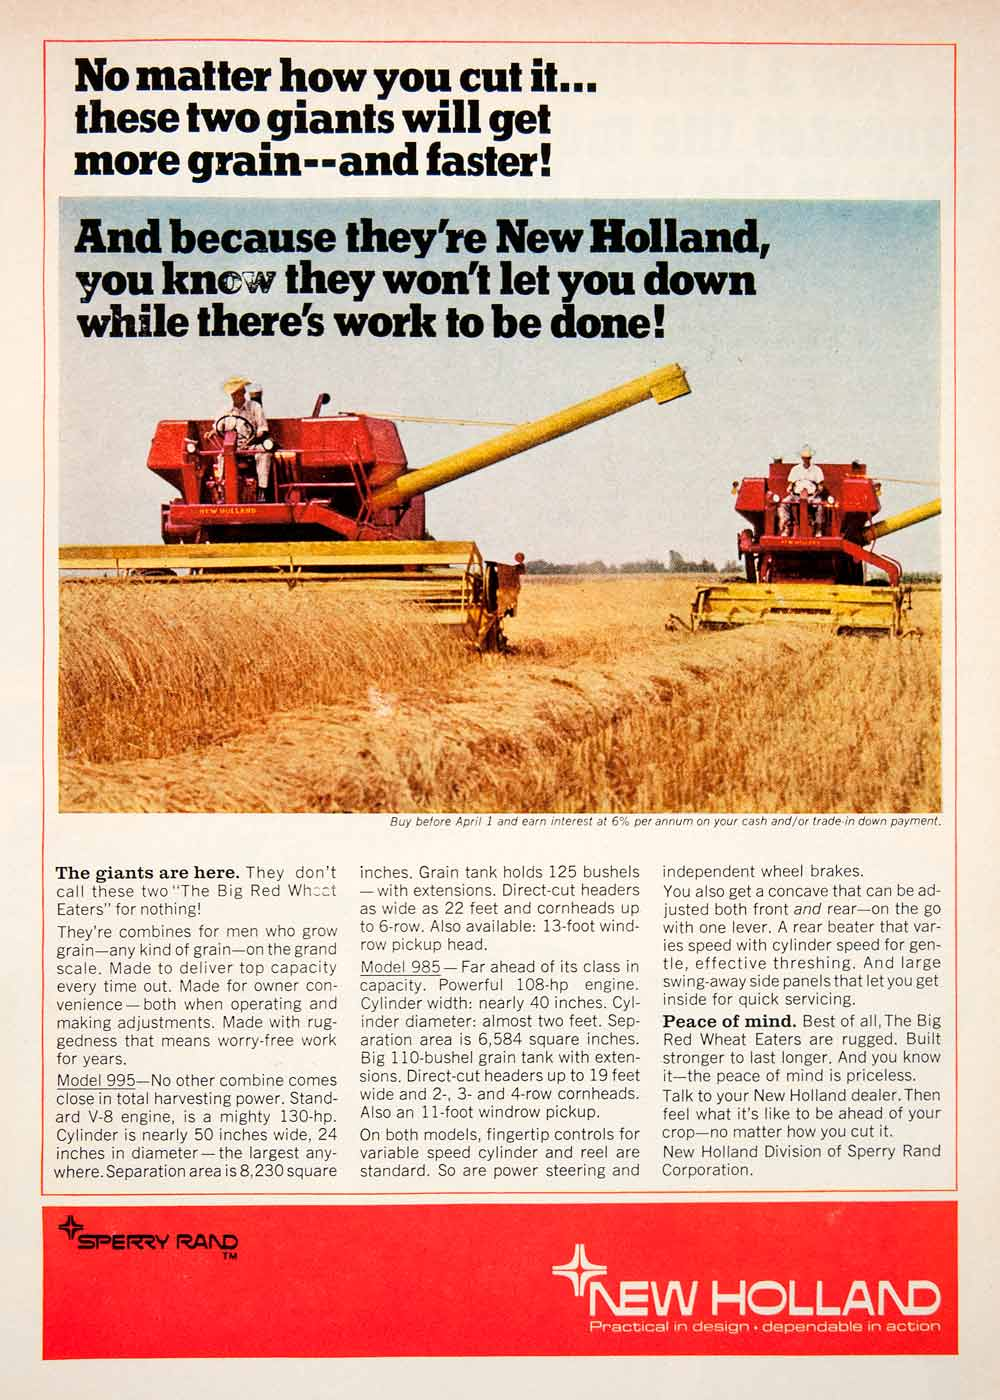 1968 Ad Sperry Rand New Holland Combine Model 995 985 Agriculture Farming SF1